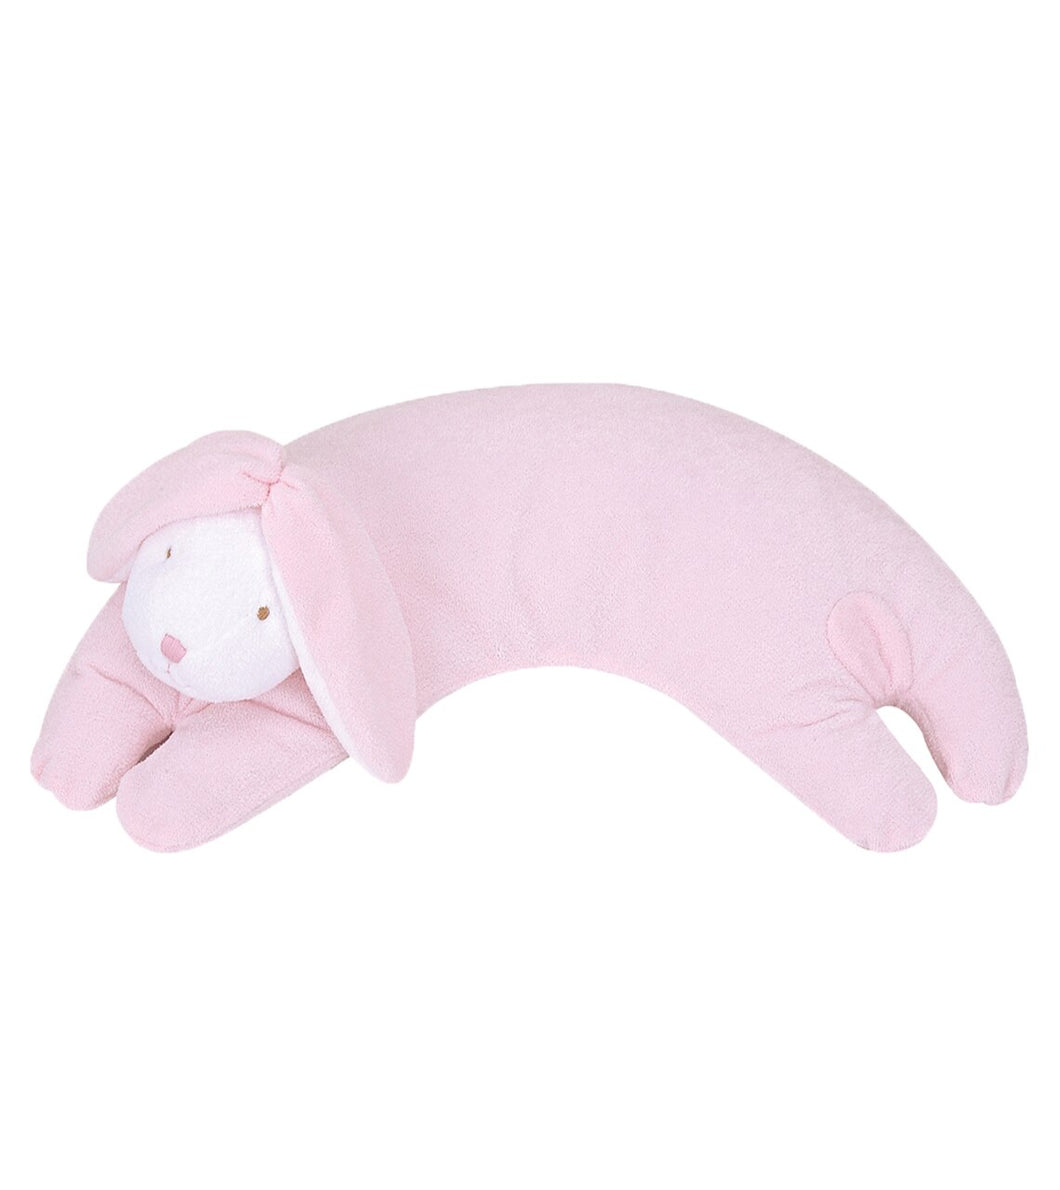 Angel Dear Curved Pillow - Pink Bunny